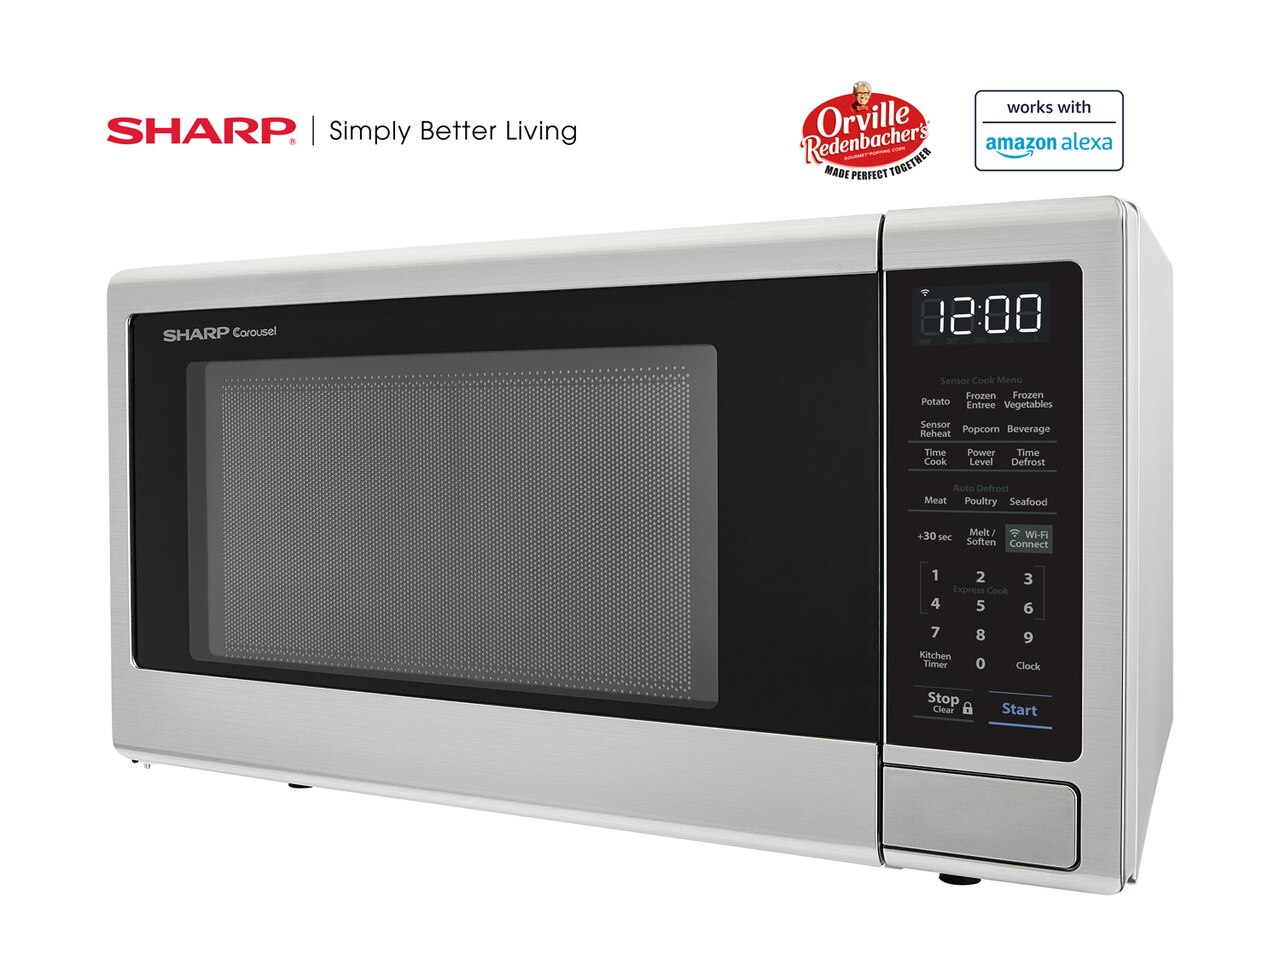 1.4 cu. ft. Sharp Stainless Steel Smart Microwave (SMC1449FS) – left side view